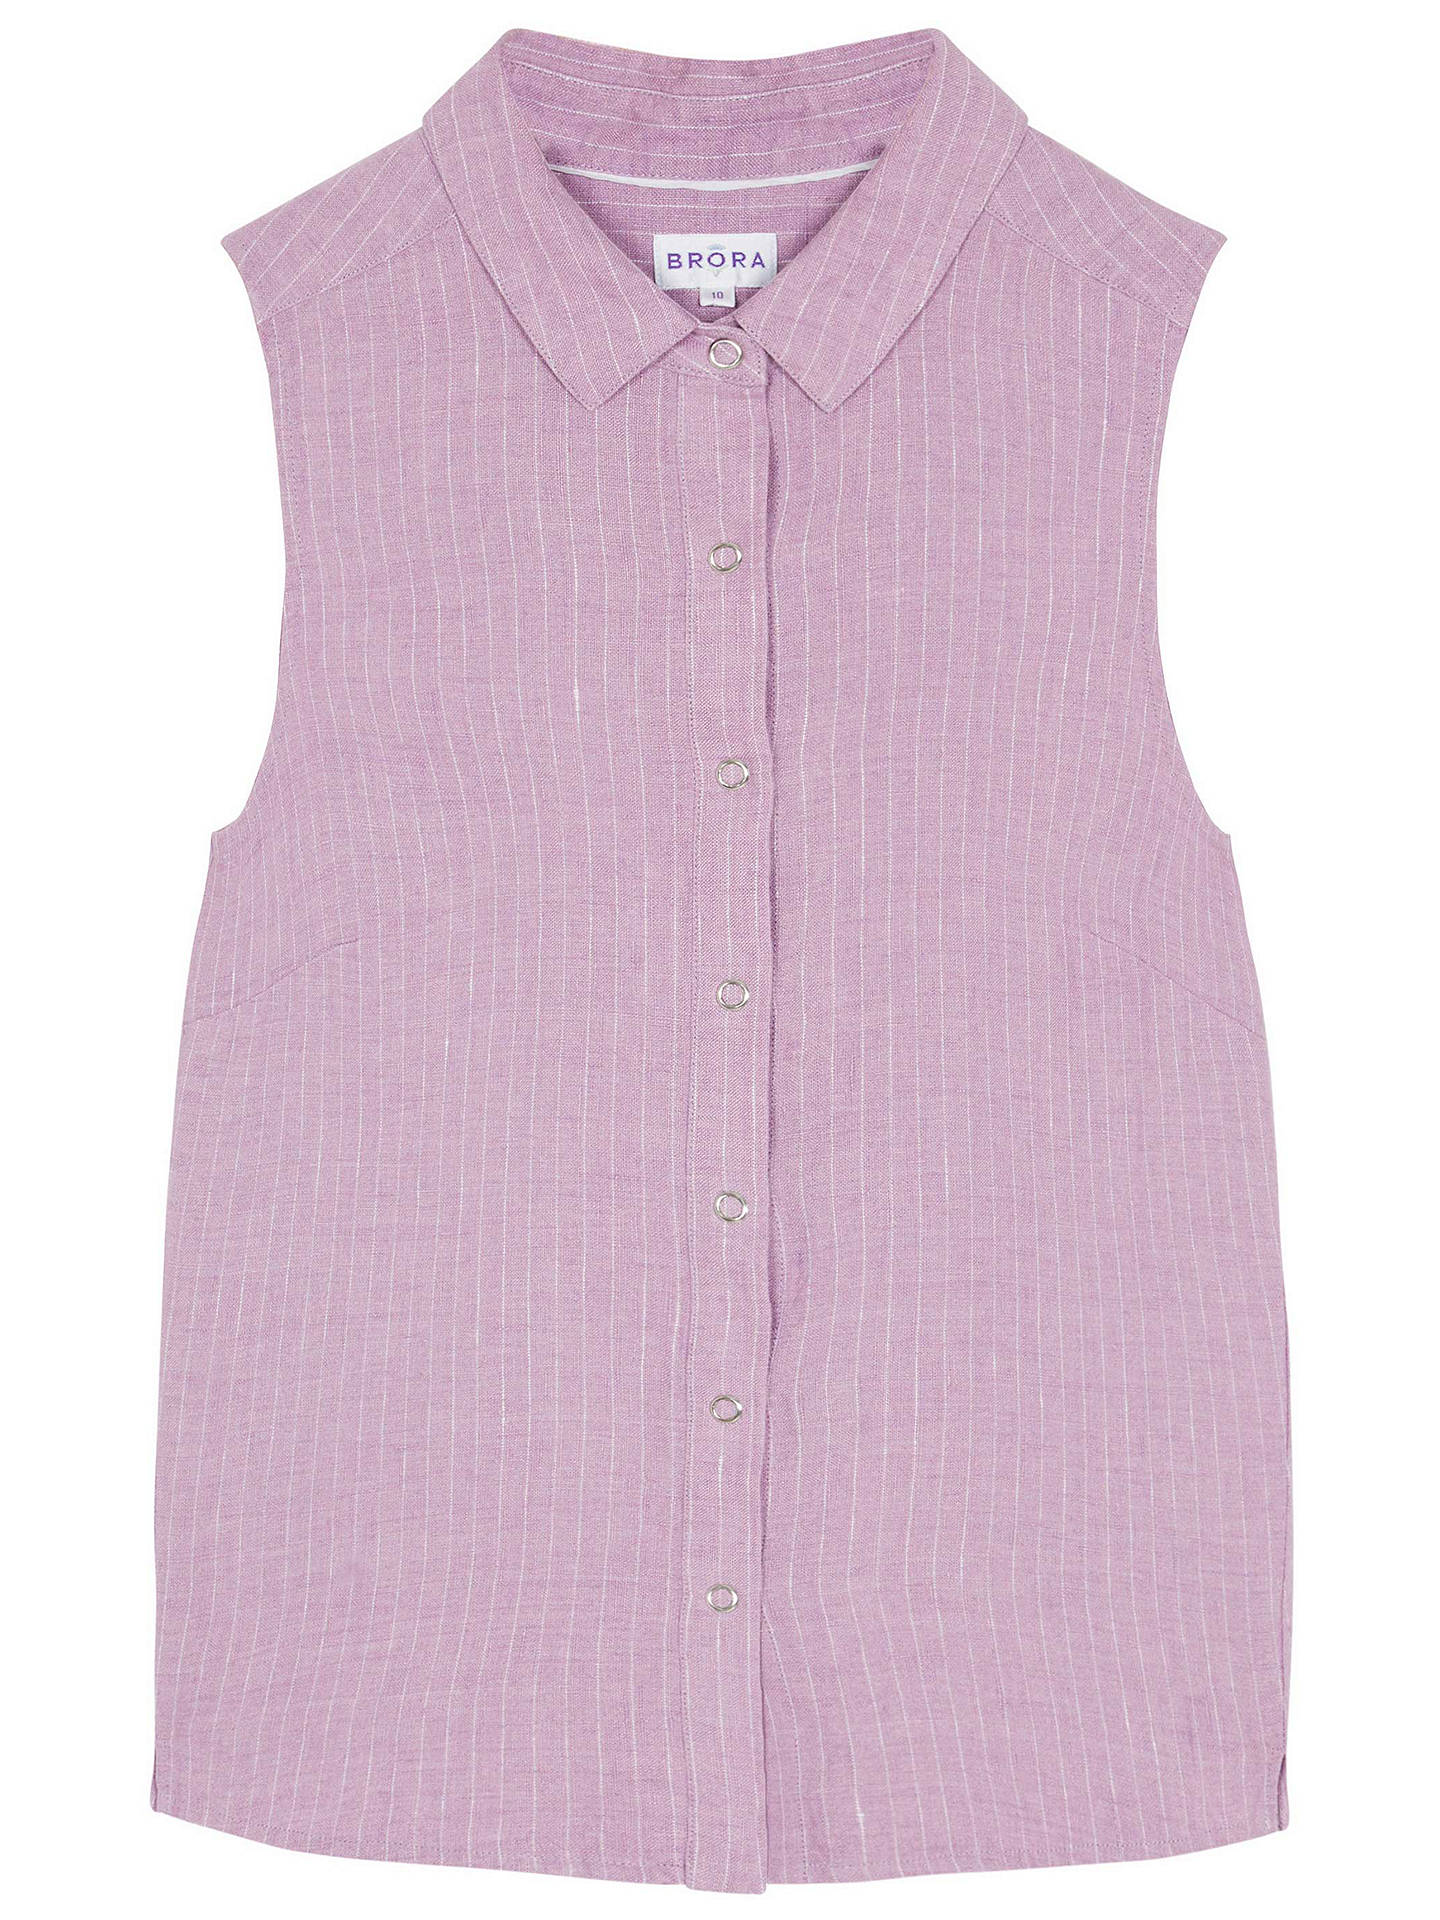 BuyBrora Pin Stripe Linen Sleeveless Shirt, Orchid & White, 6 Online at johnlewis.com